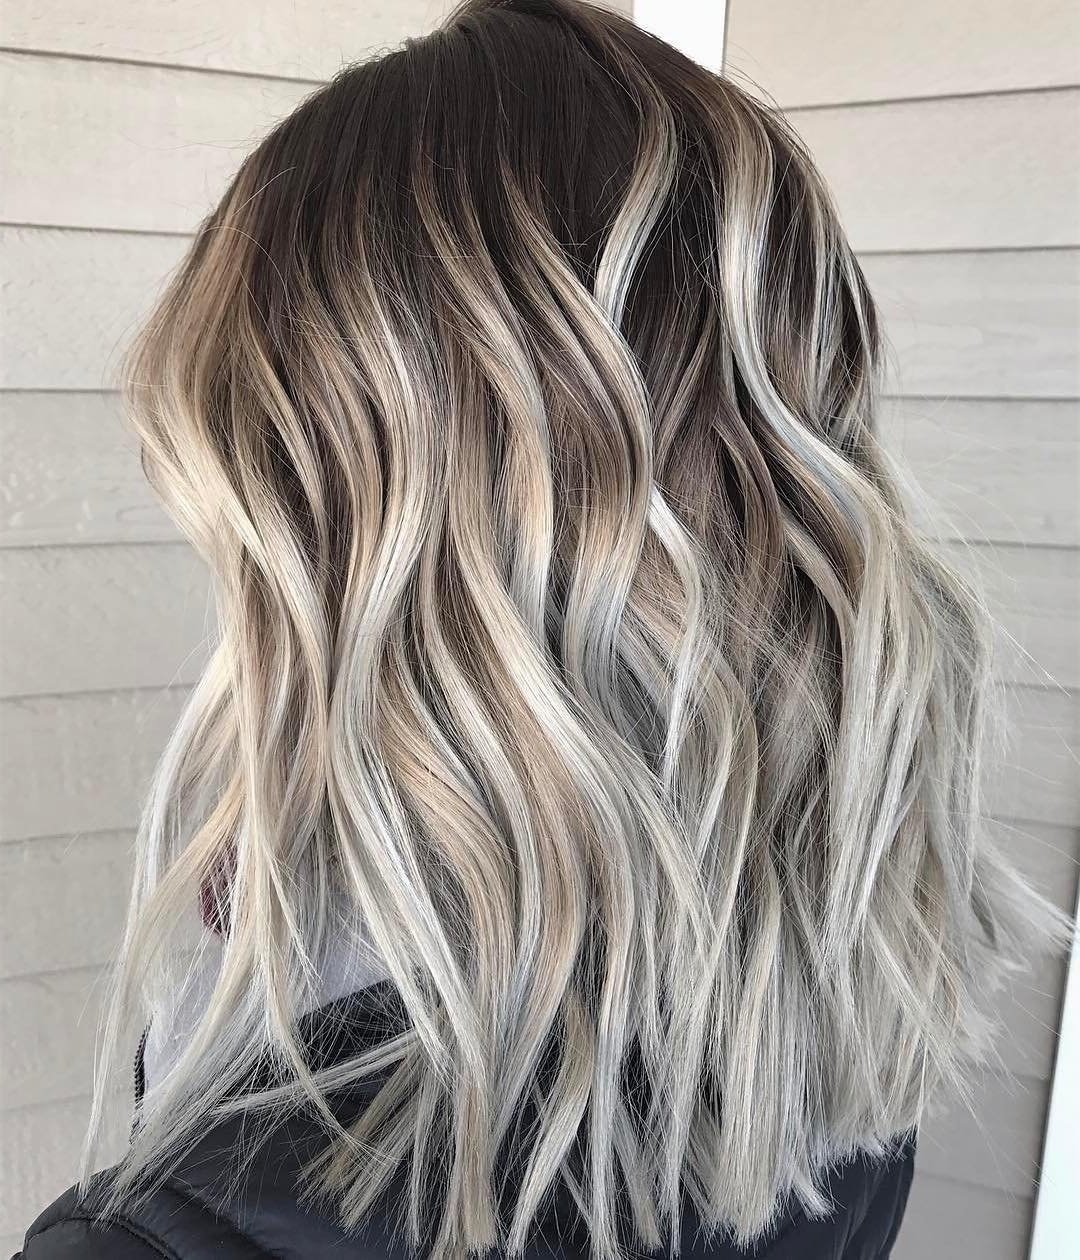 Fashionable Textured Medium Length Look Blonde Hairstyles With 10 Best Medium Hairstyles For Women – Shoulder Length Hair Cuts  (View 8 of 20)